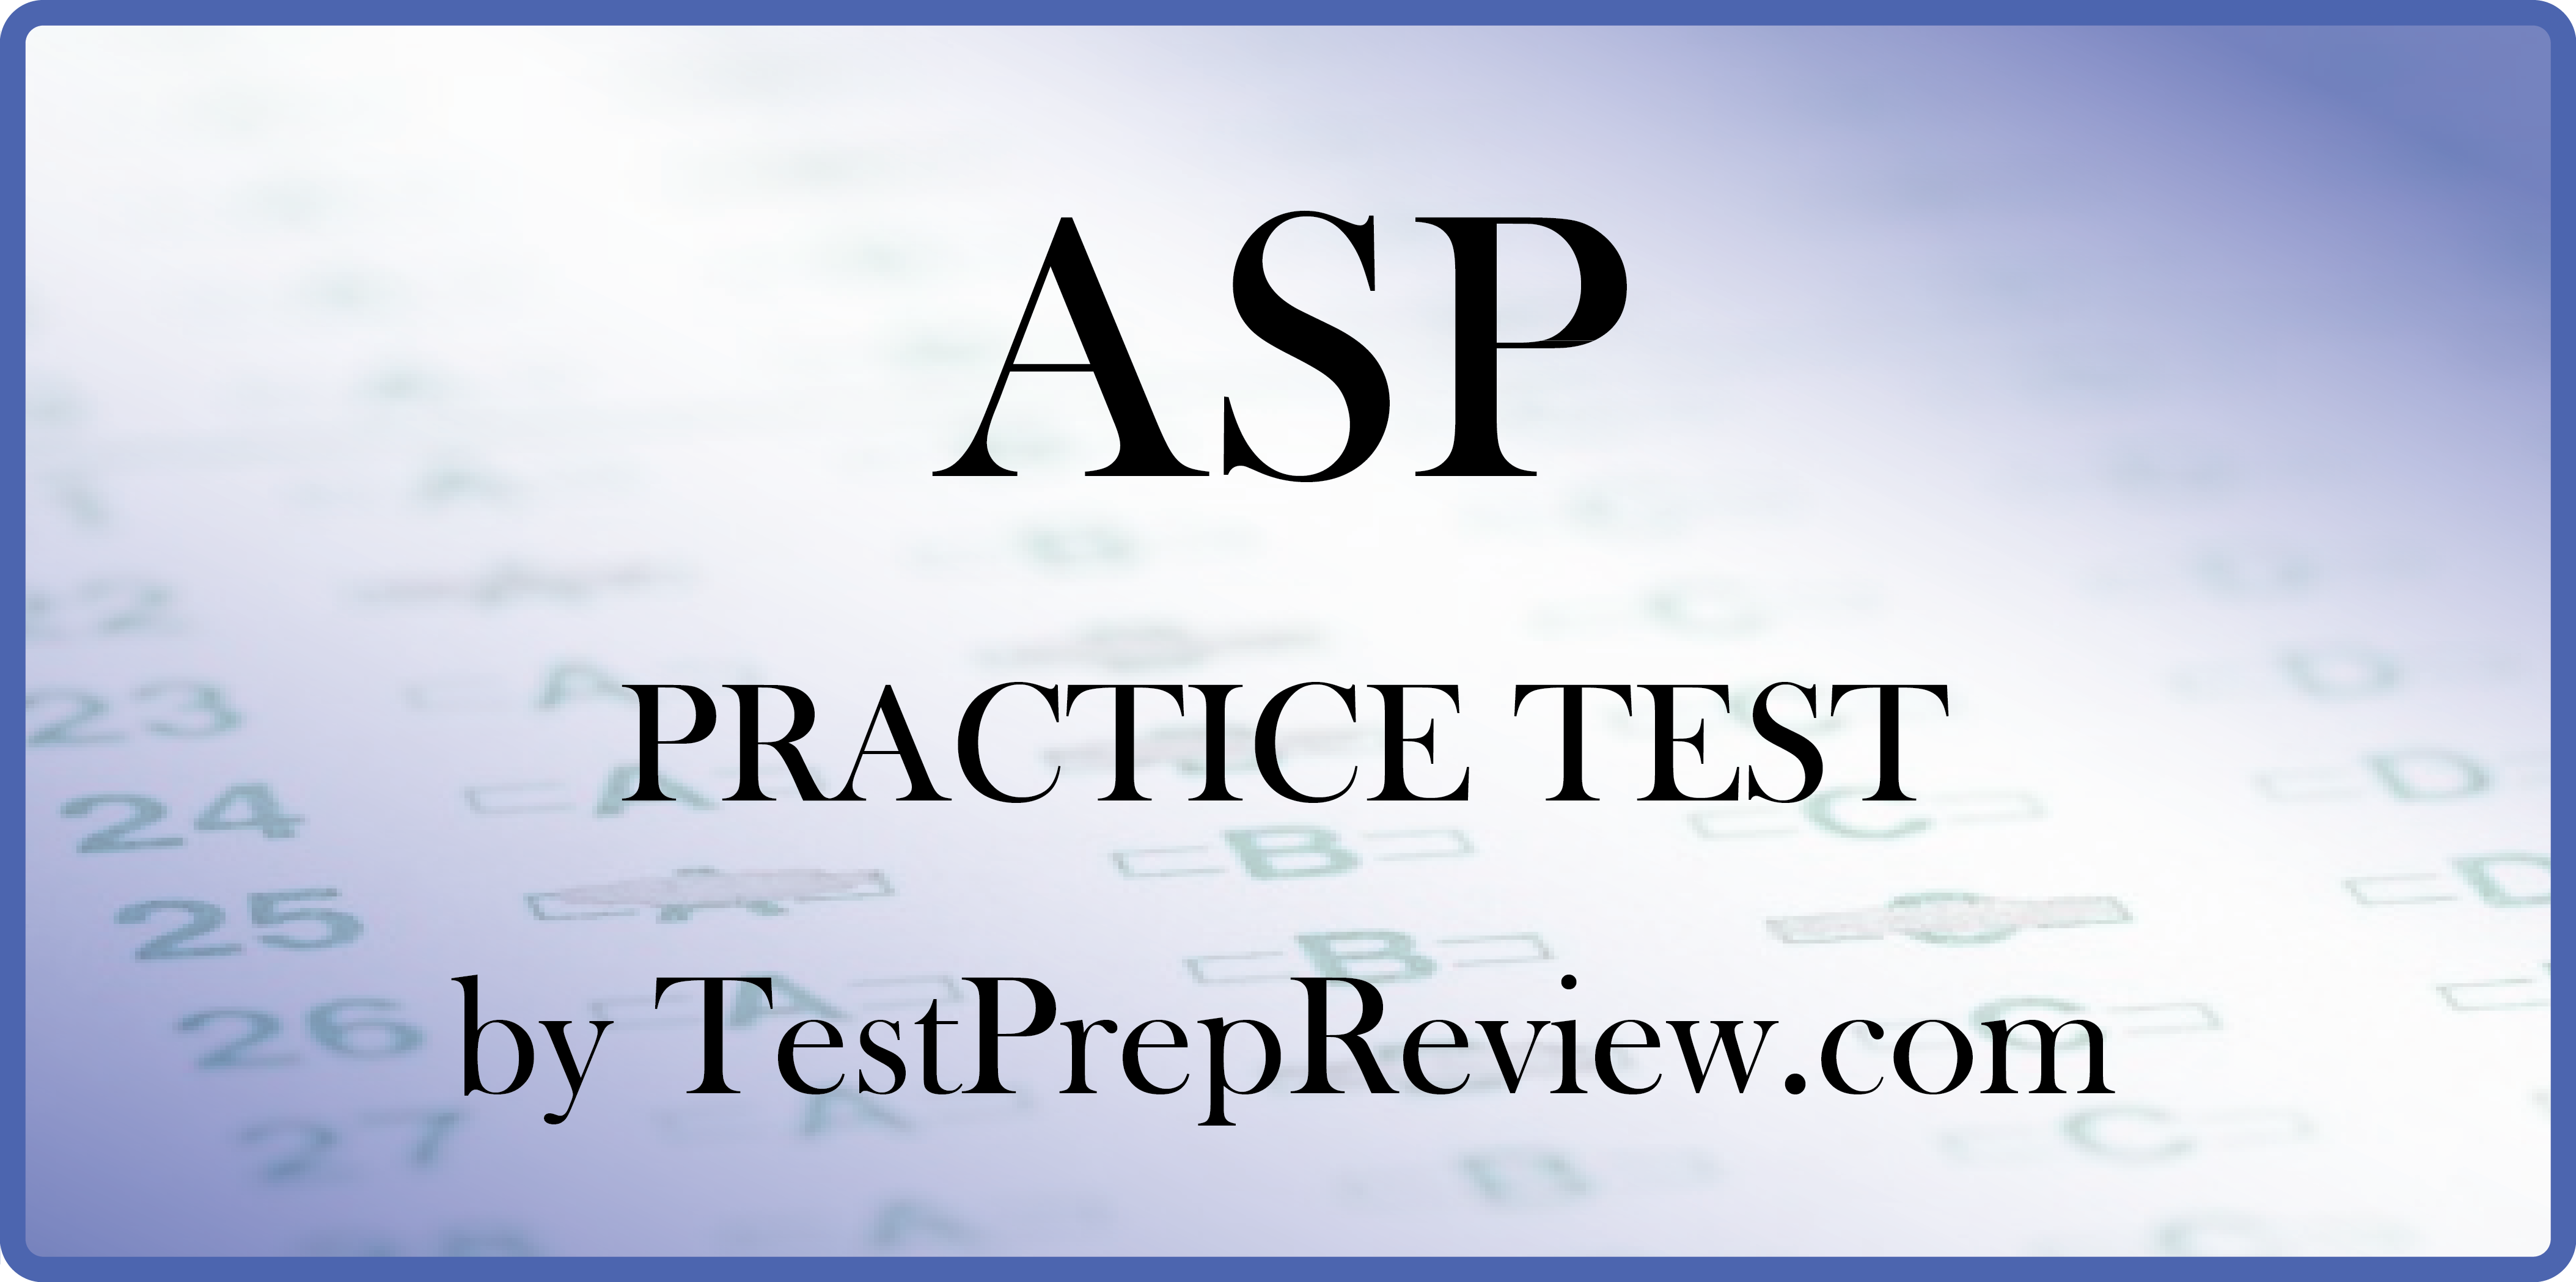 free asp practice test questions by testprepreview be prepared for your asp test and get